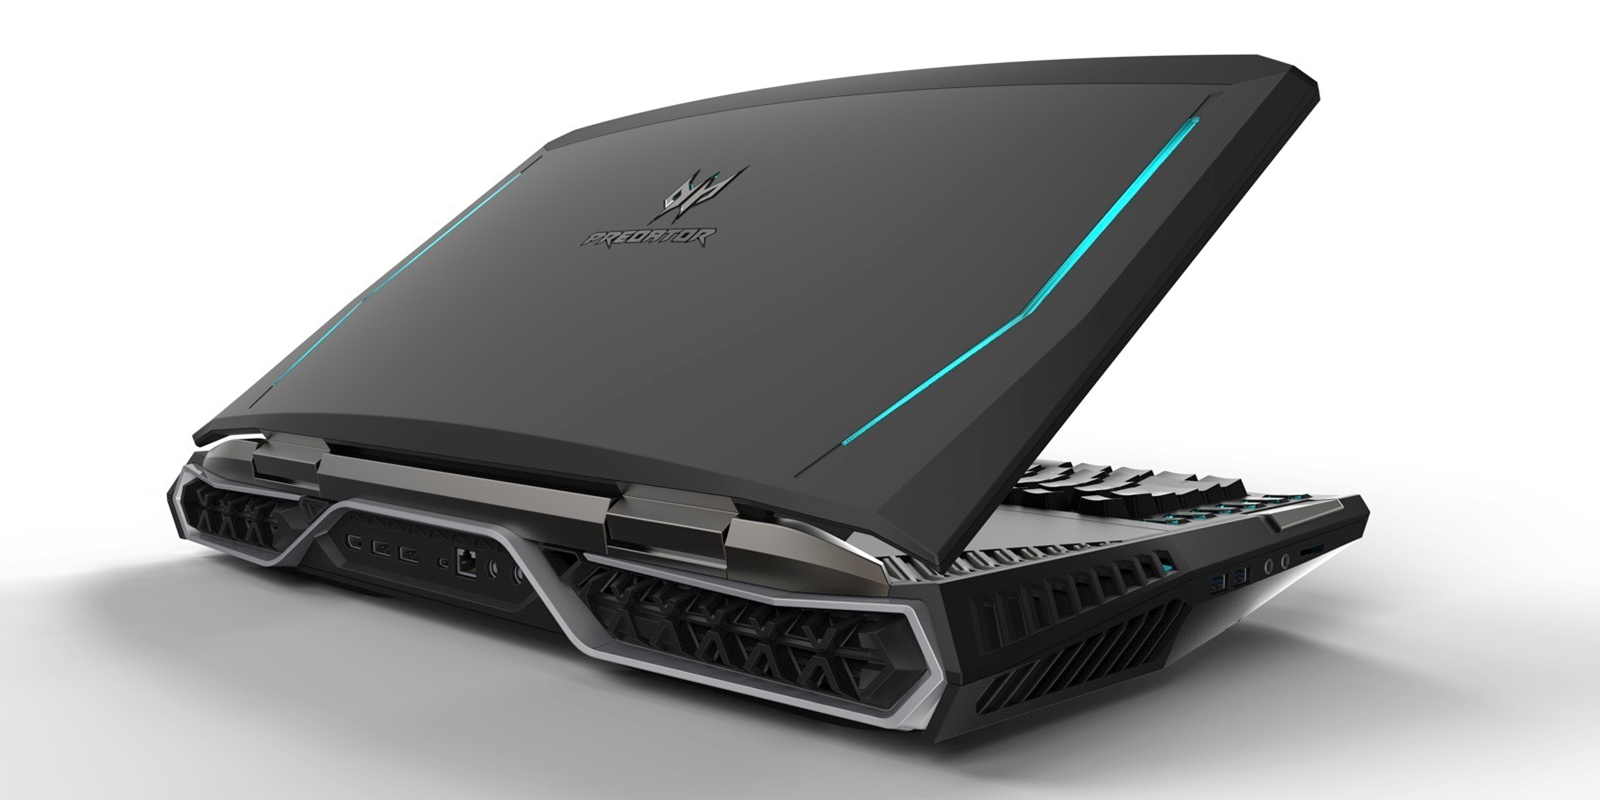 Acer's latest gaming laptop looks absolutely horrifying